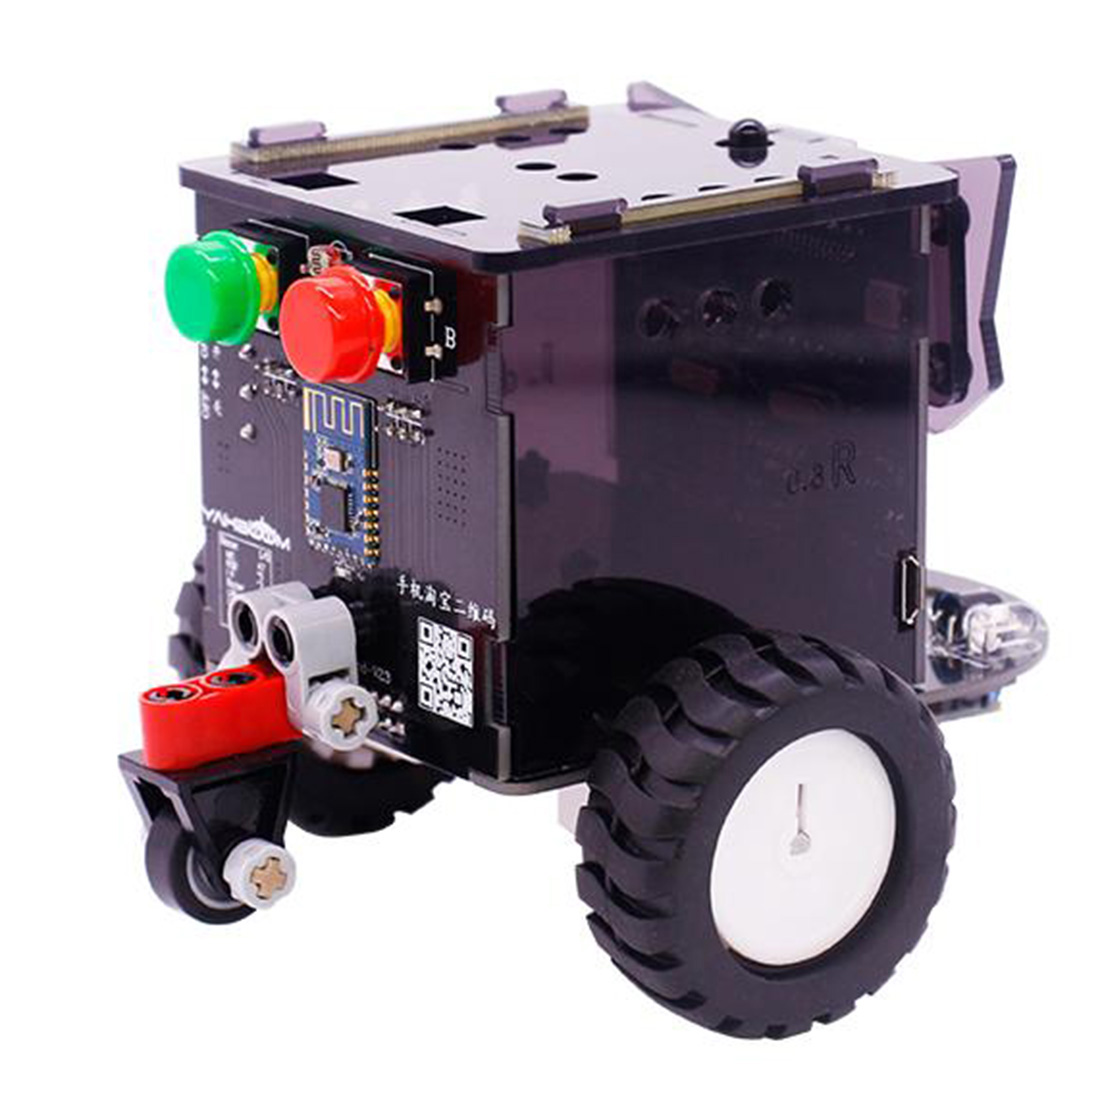 Standard Version Omibox Scratch Programmable Robot Car Kit Brain-Training Toy For Children Kids Educational Toys Birthday Gift